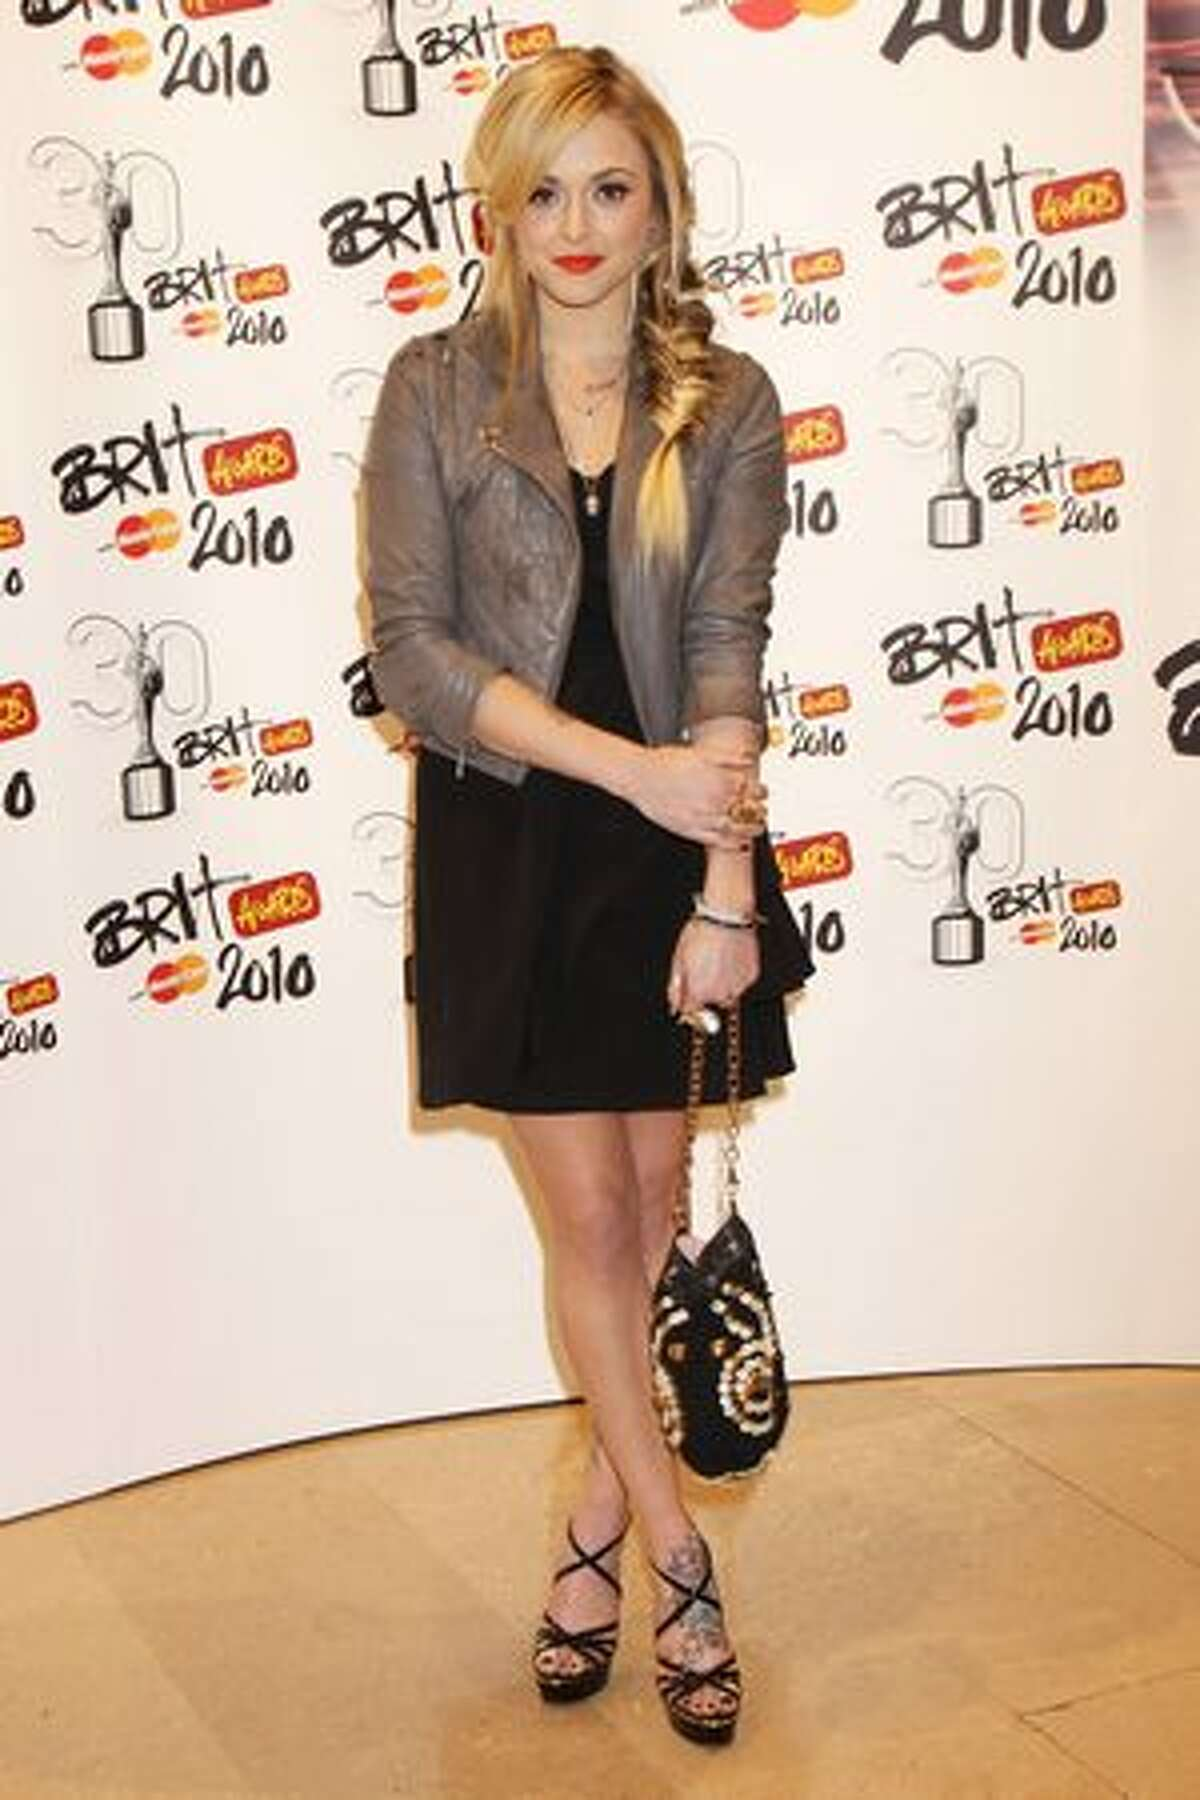 Fearne Cotton arrives at The Brit Awards 2010 held at Earls Court on February 16, 2010 in London, England.